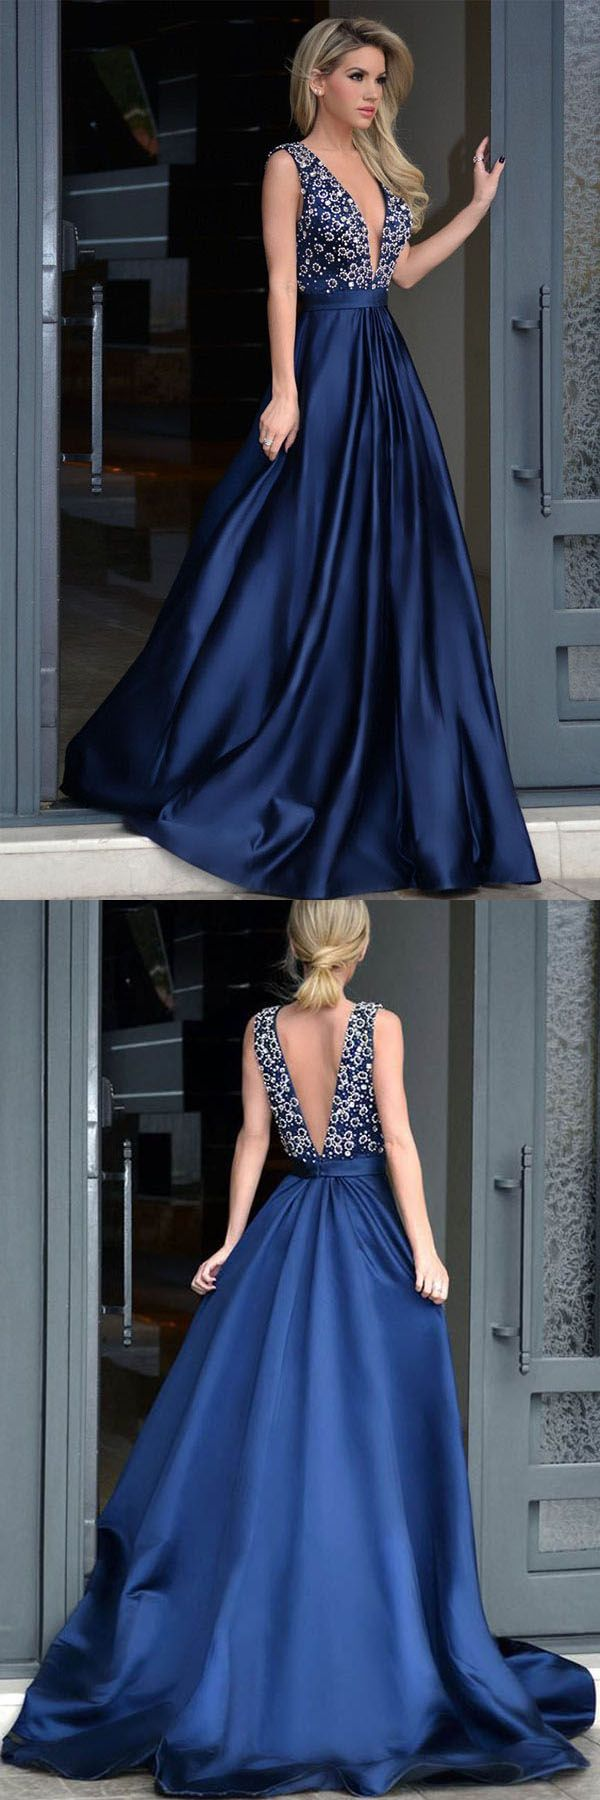 Vneck royal blue satin beading prom dresses with sweep train pg